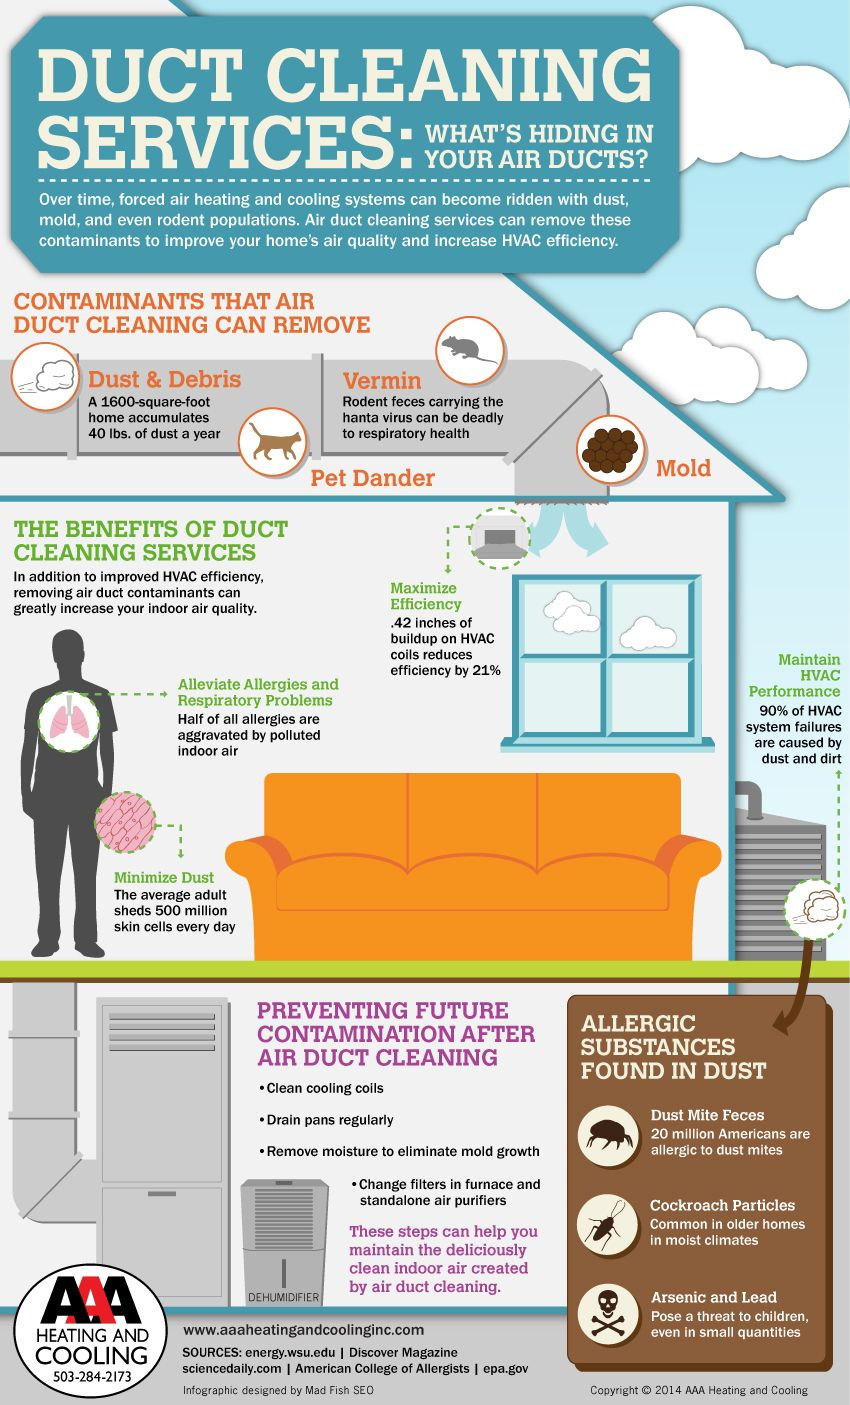 Duct Cleaning Services What's Hiding in Your Air Ducts